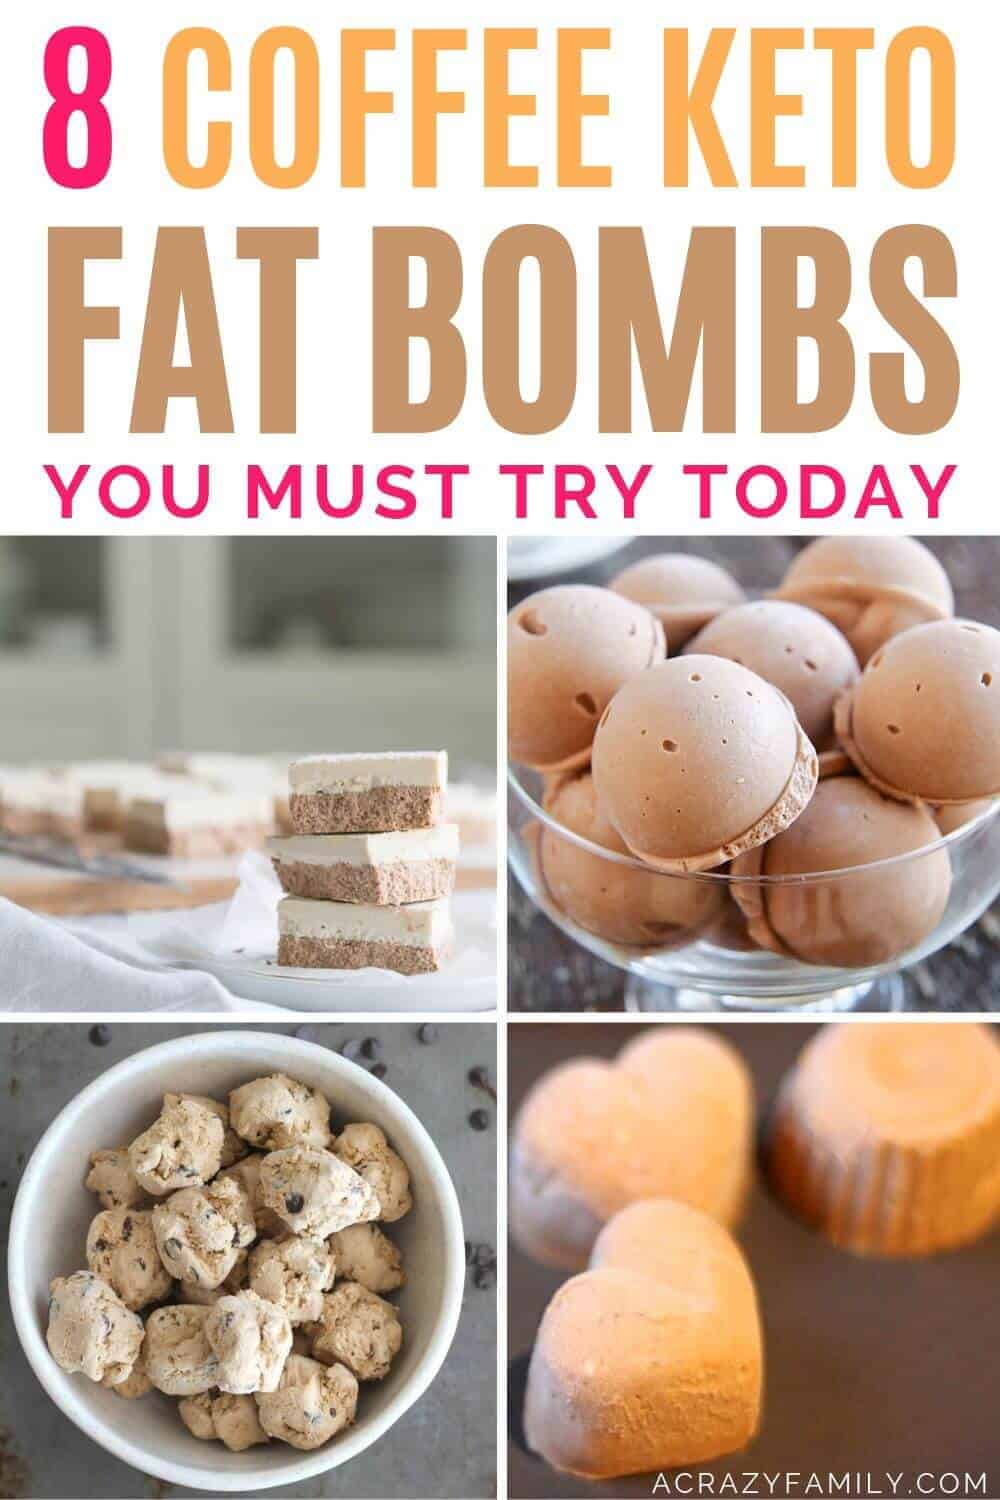 coffee-themed fat bombs